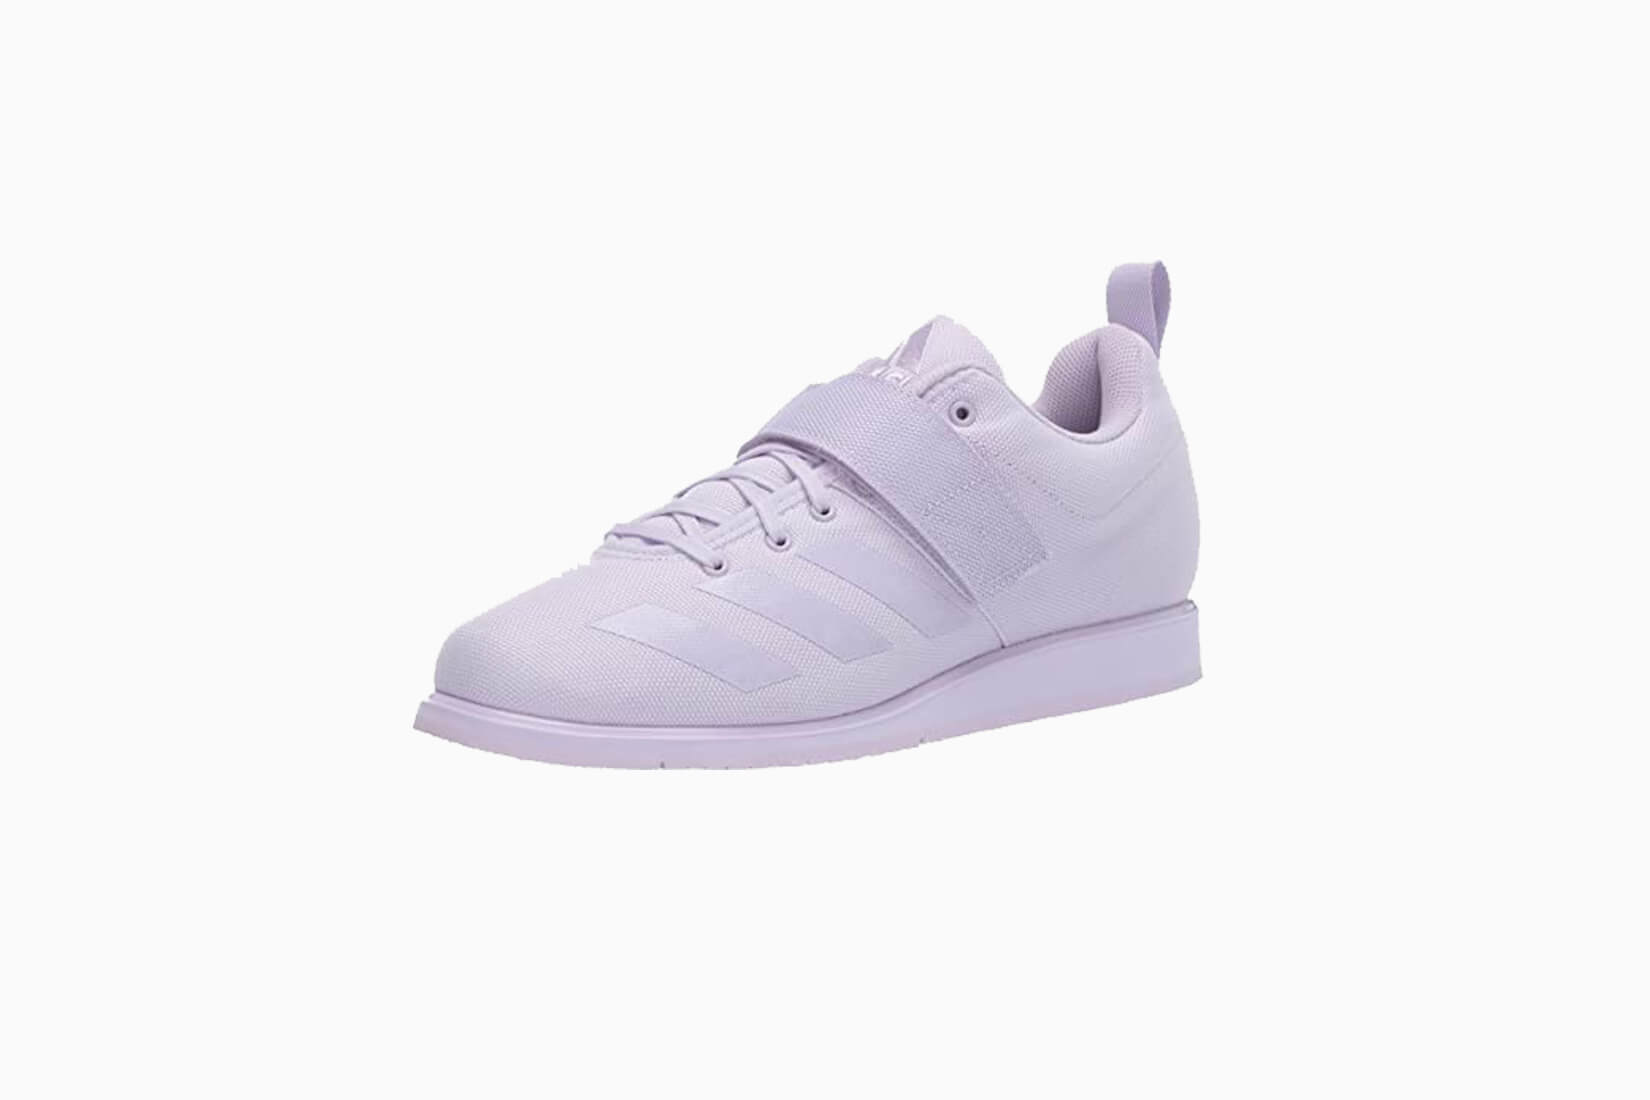 best workout shoes women adidas powerlift 4 review - Luxe Digital